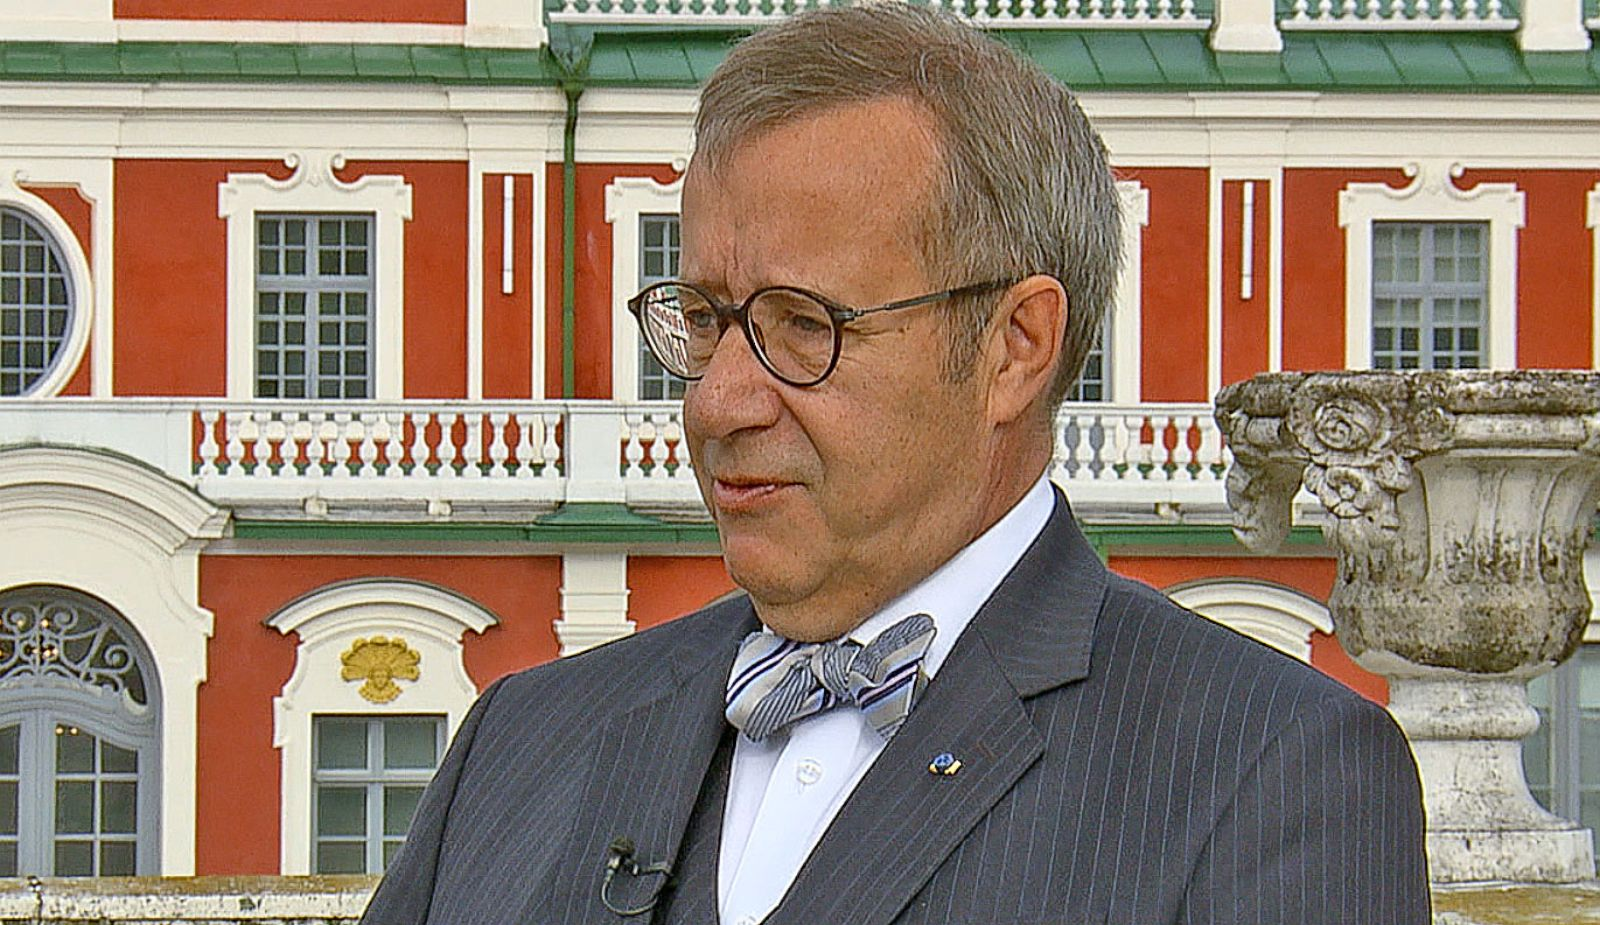 VIDEO: Estonia's President Hopes Trump 'Would Be Well-Briefed on Foreign Affairs'